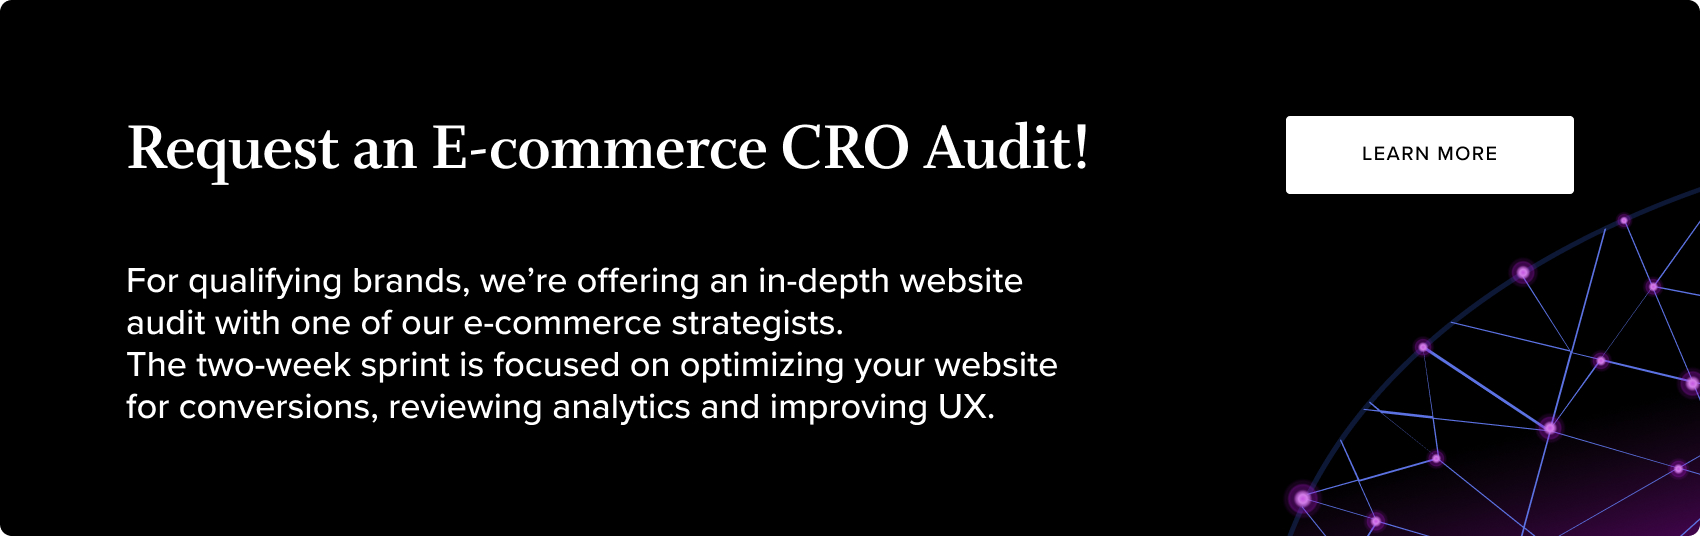 CRO Audit CTA